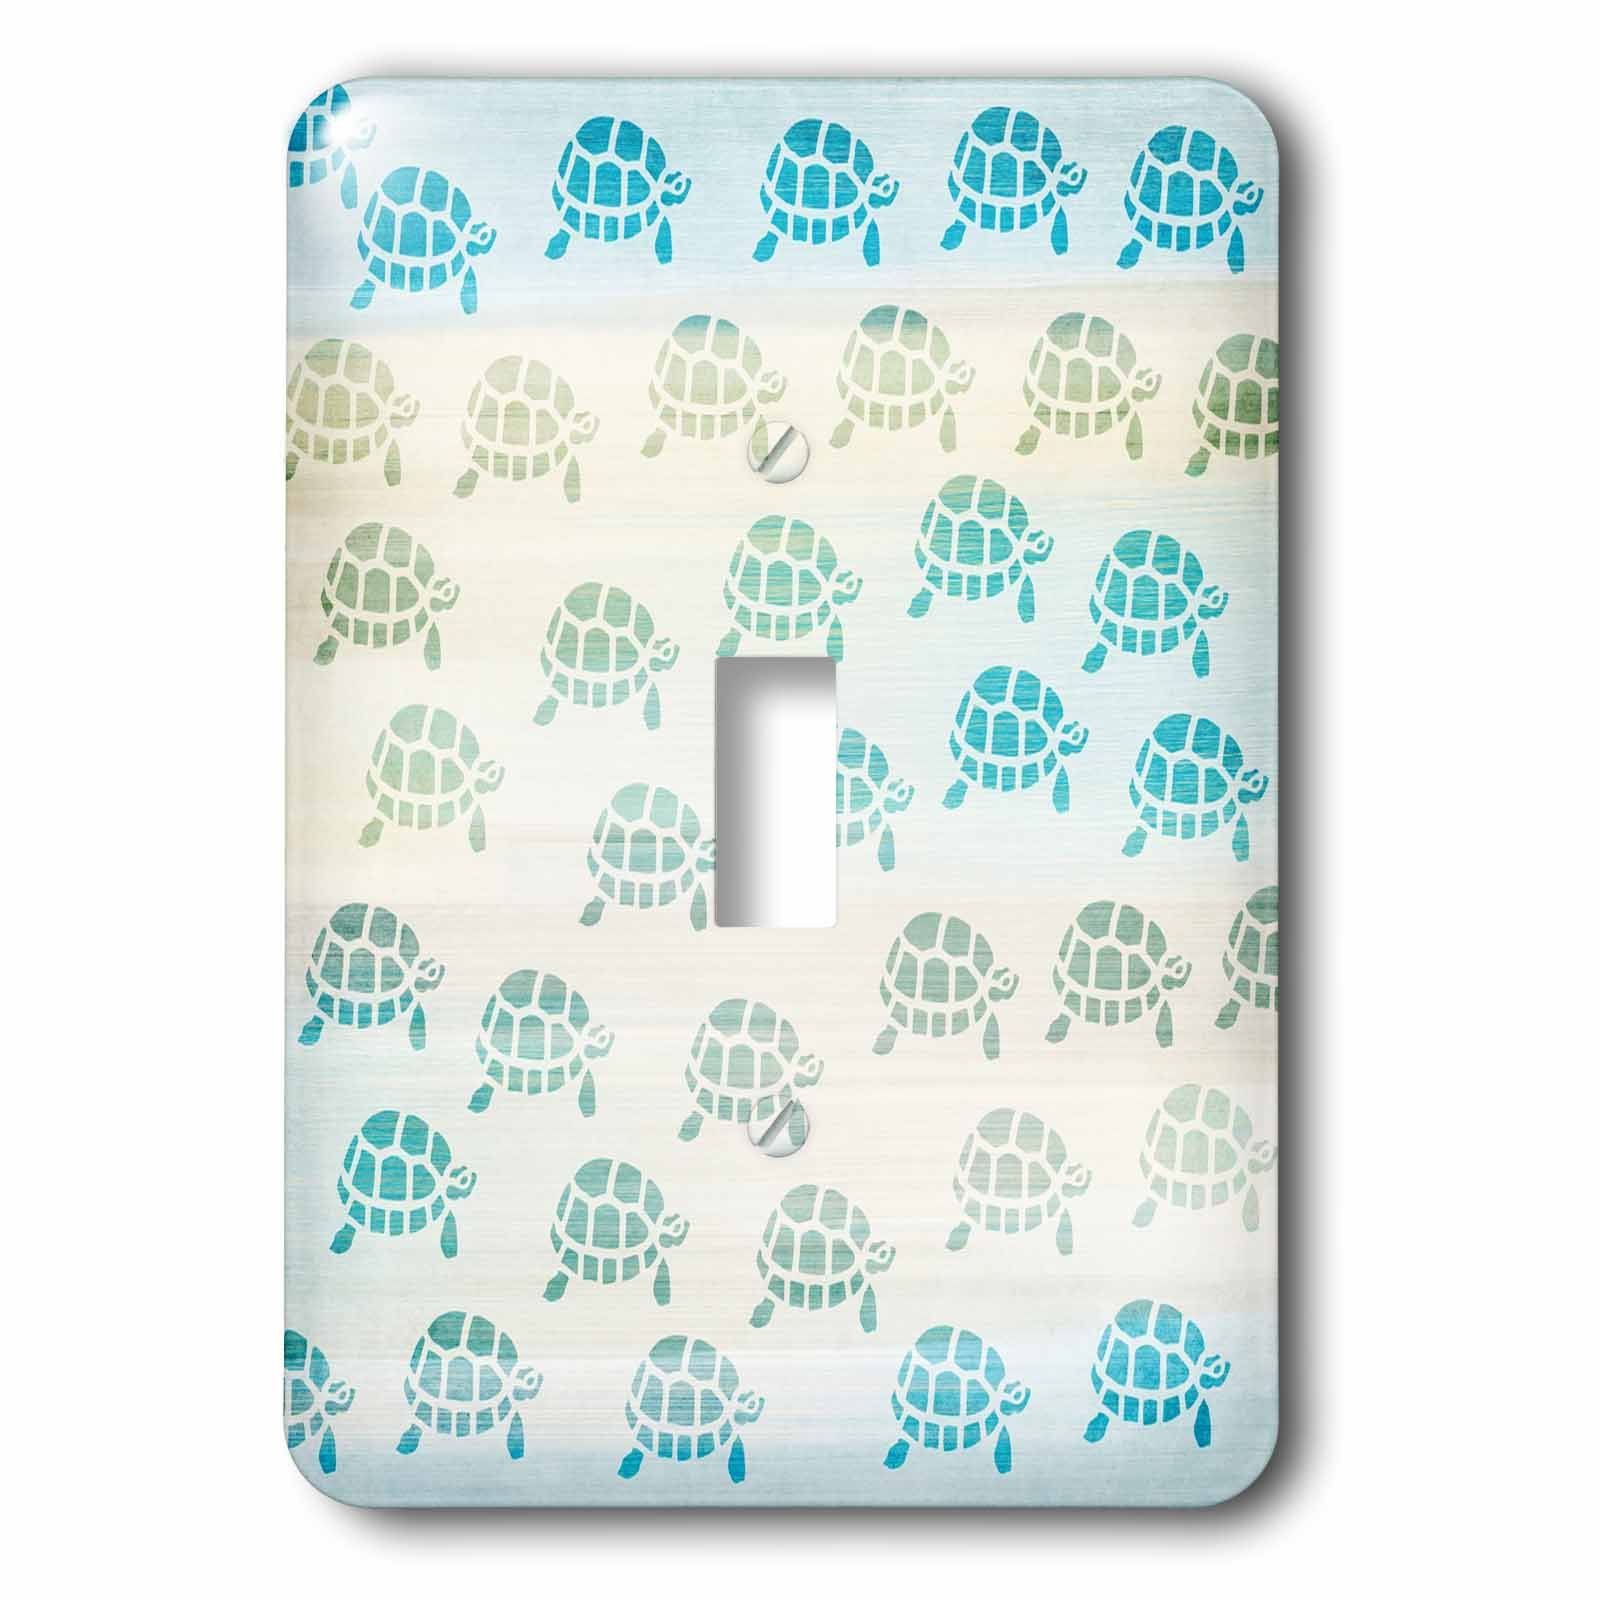 3dRose lsp_152073_1 Little Aqua Turtles Animal Art Light Switch Cover